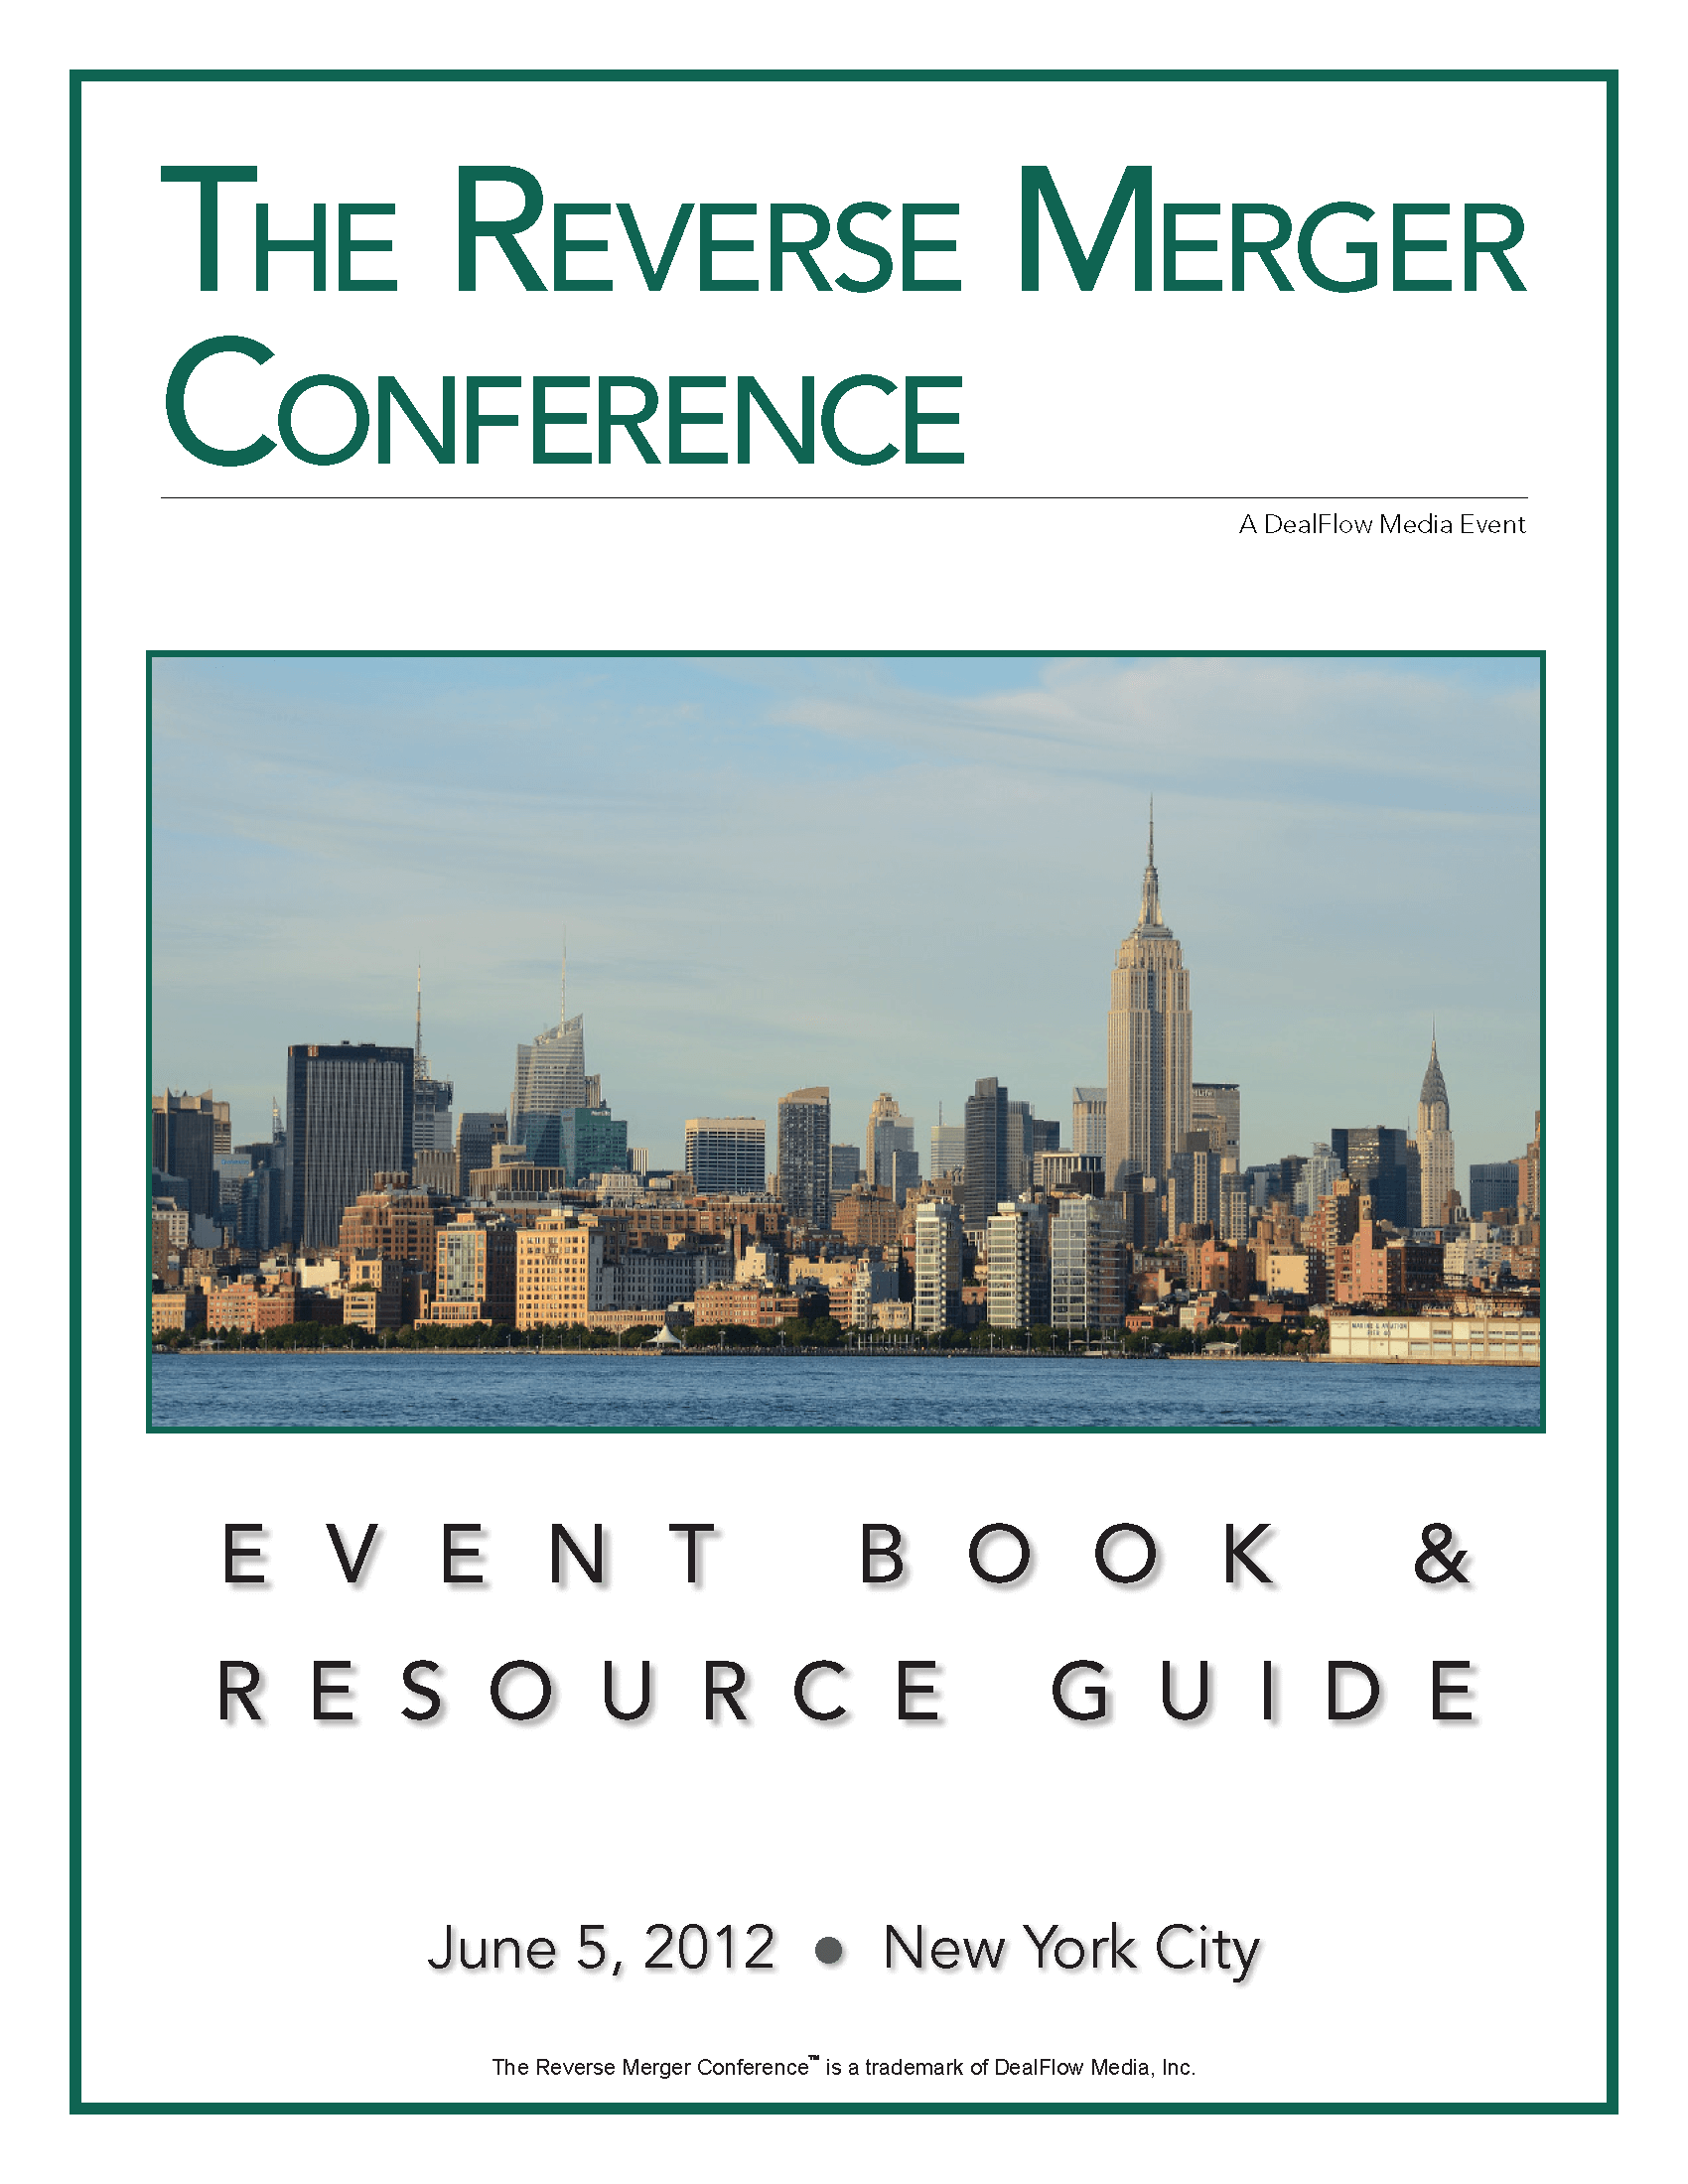 The Reverse Merger Conference